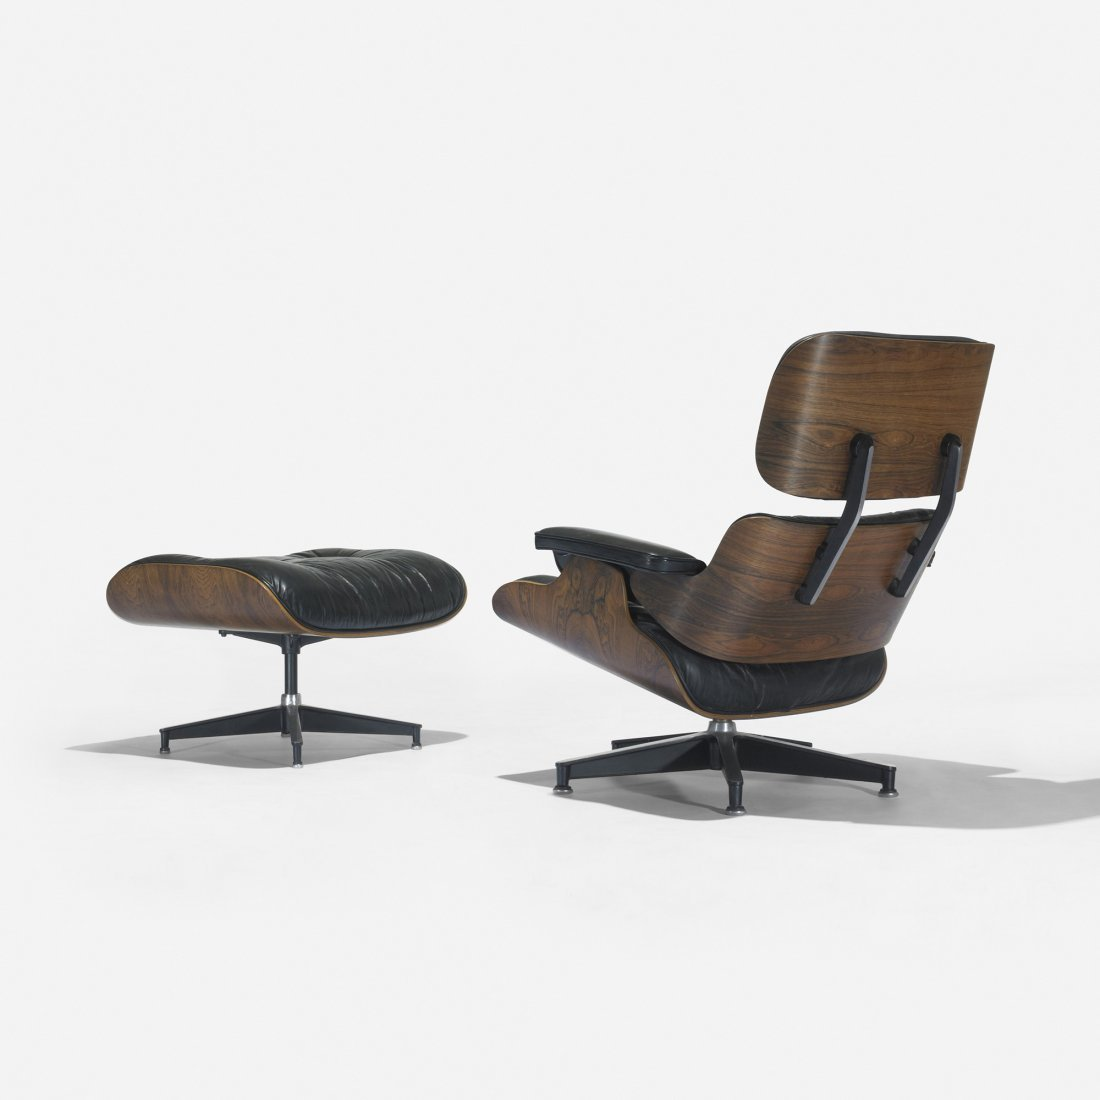 113: Eames 670 lounge chairs and 671 ottoman